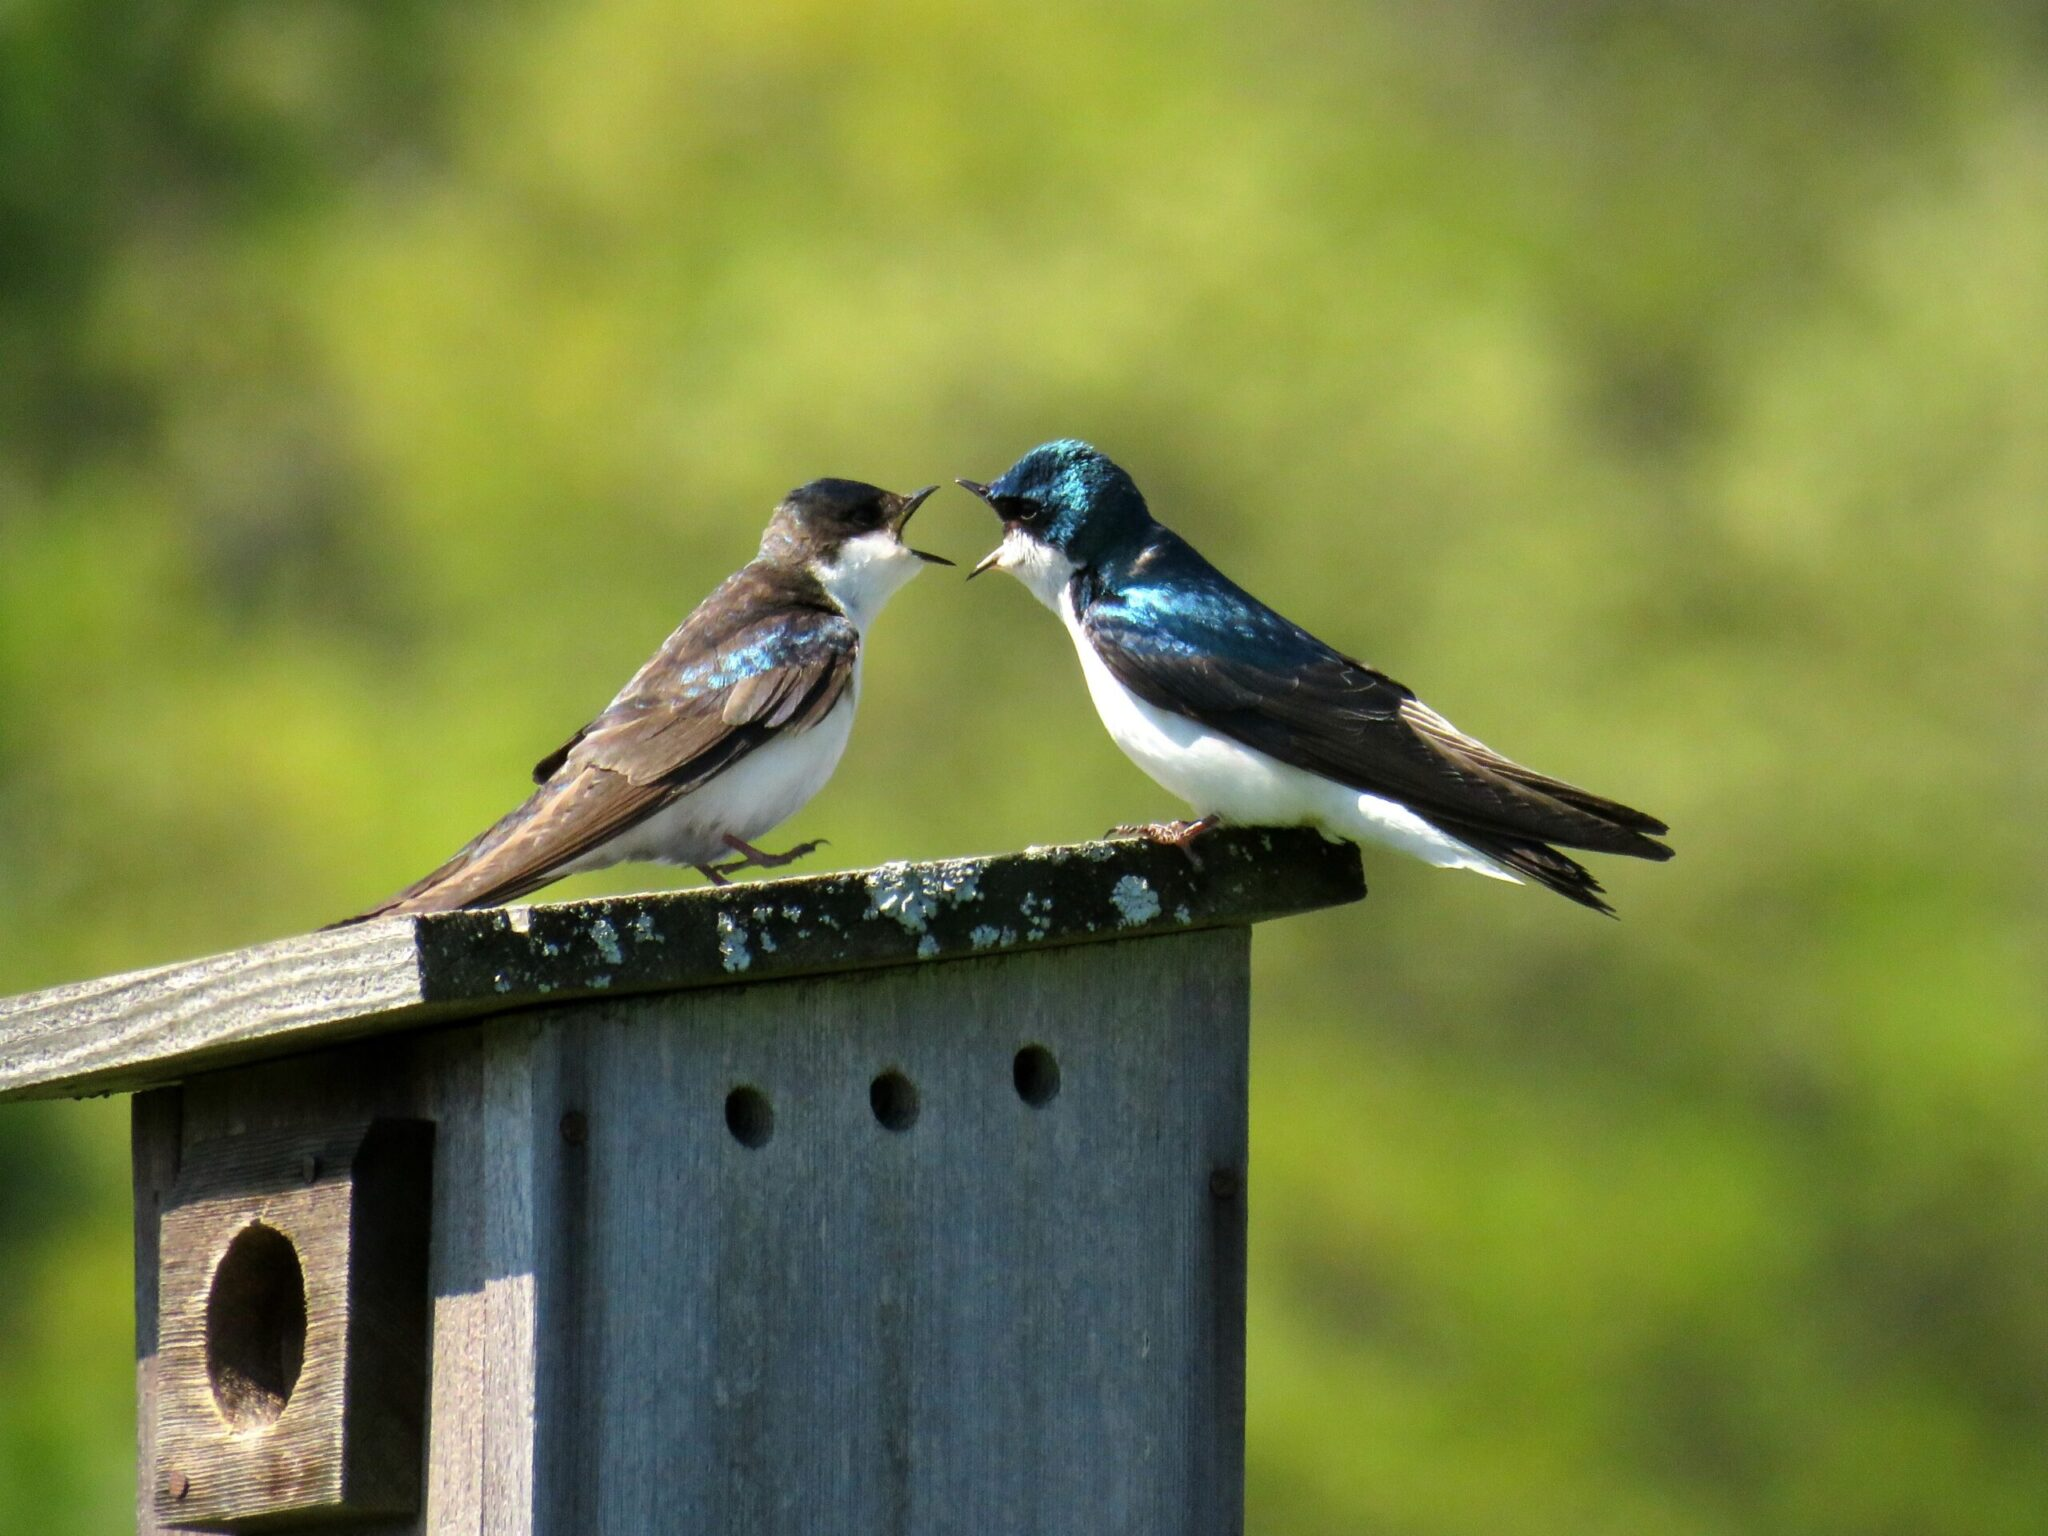 2 birds, one blue, one brown, perched on birdhouse and squawking at each other to represent arguing